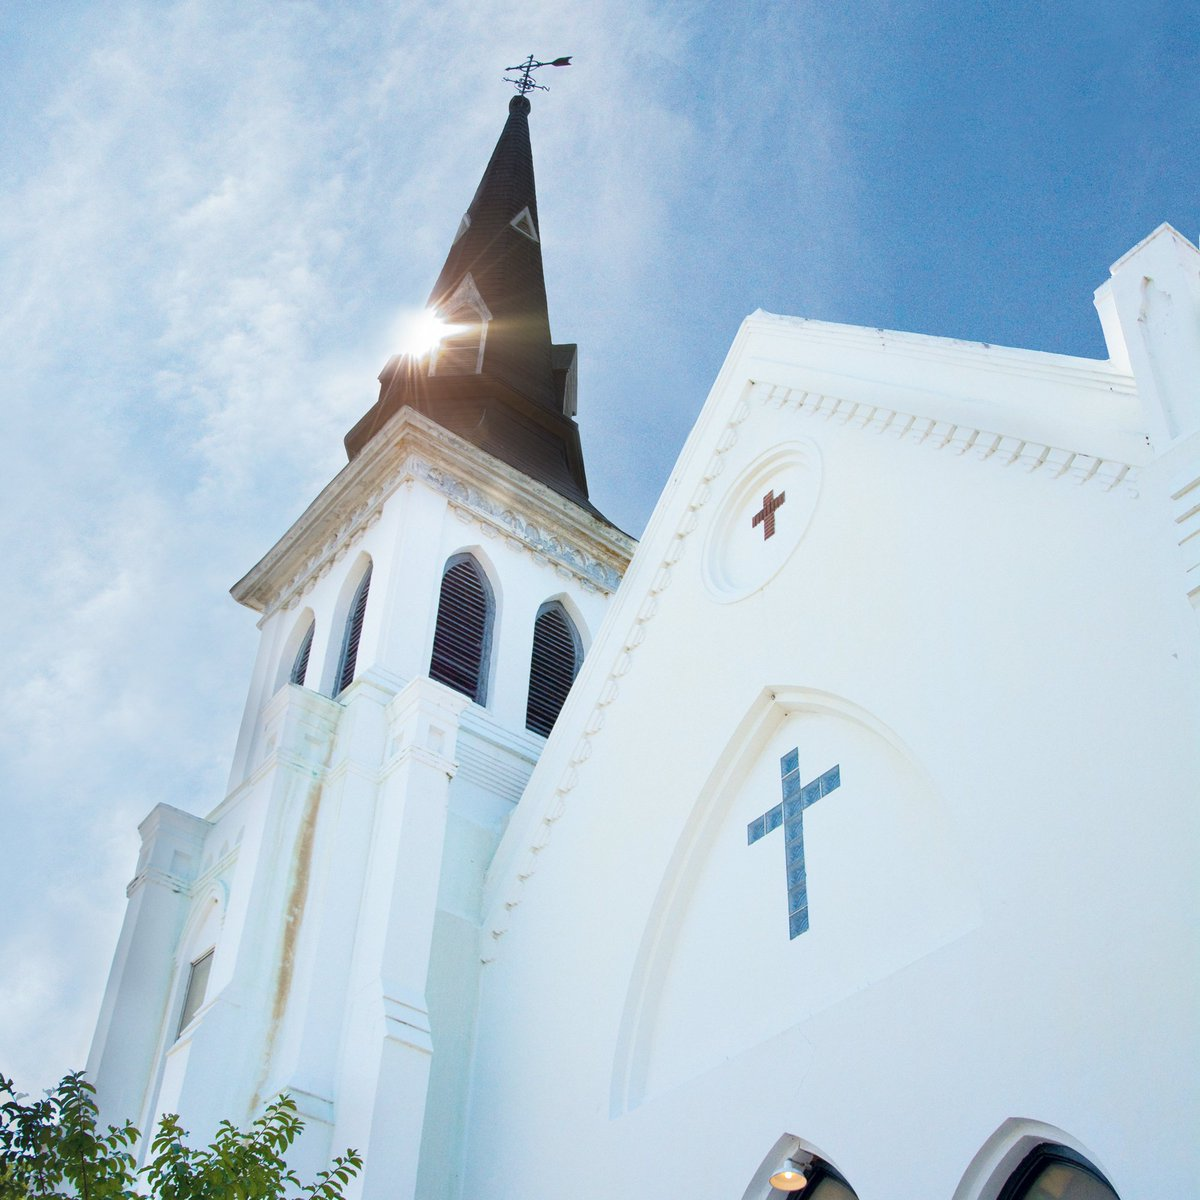 Today we honor the victims of the Mother Emanuel AME Church shootings and their loved ones. https://t.co/KazLYtGpXu